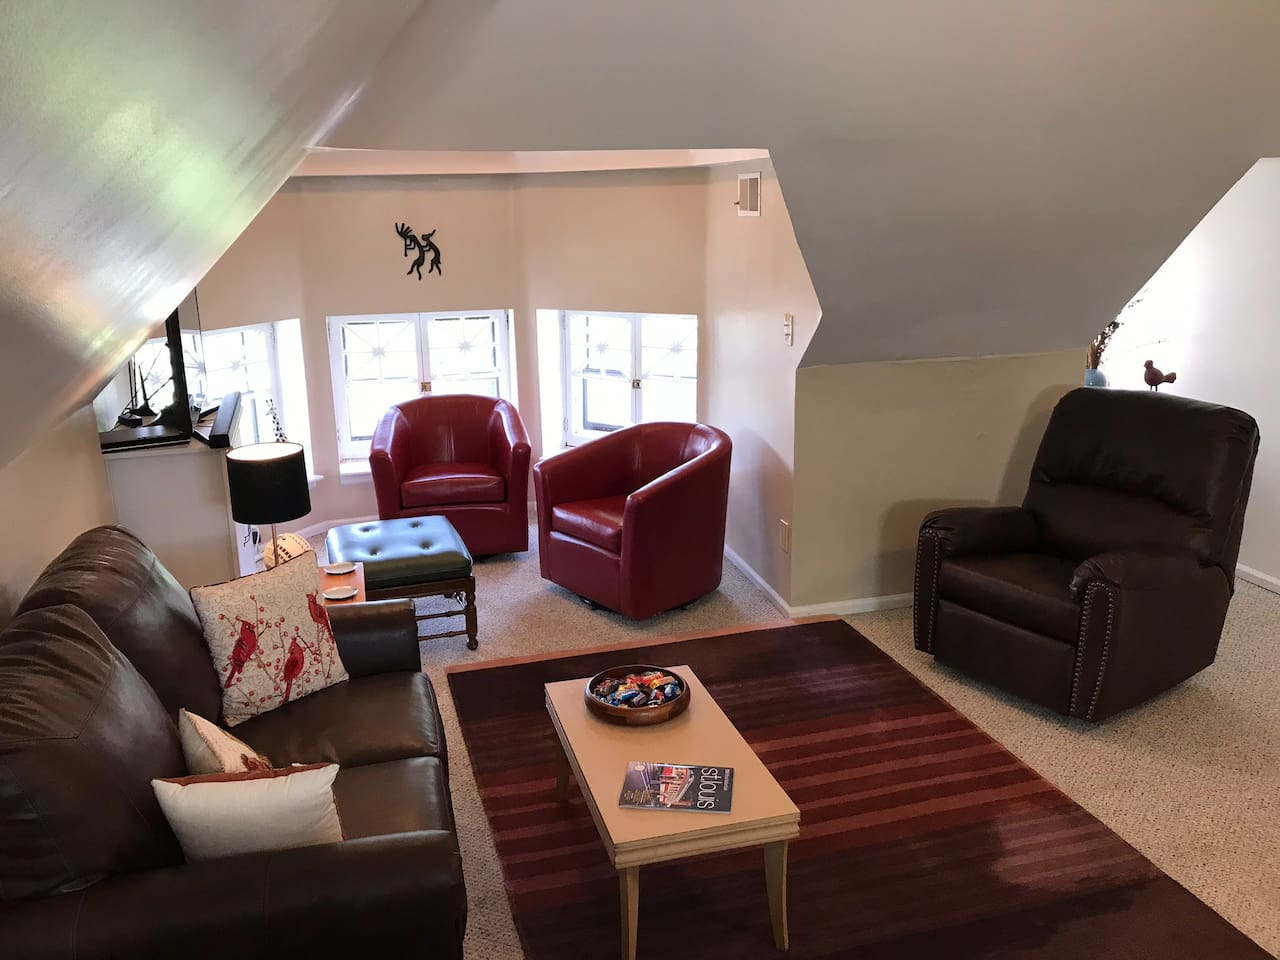 Welcome to my third floor Airbnb. People have been loving this space, with its eccentric architecture and super reasonable pricing. Check the reviews!